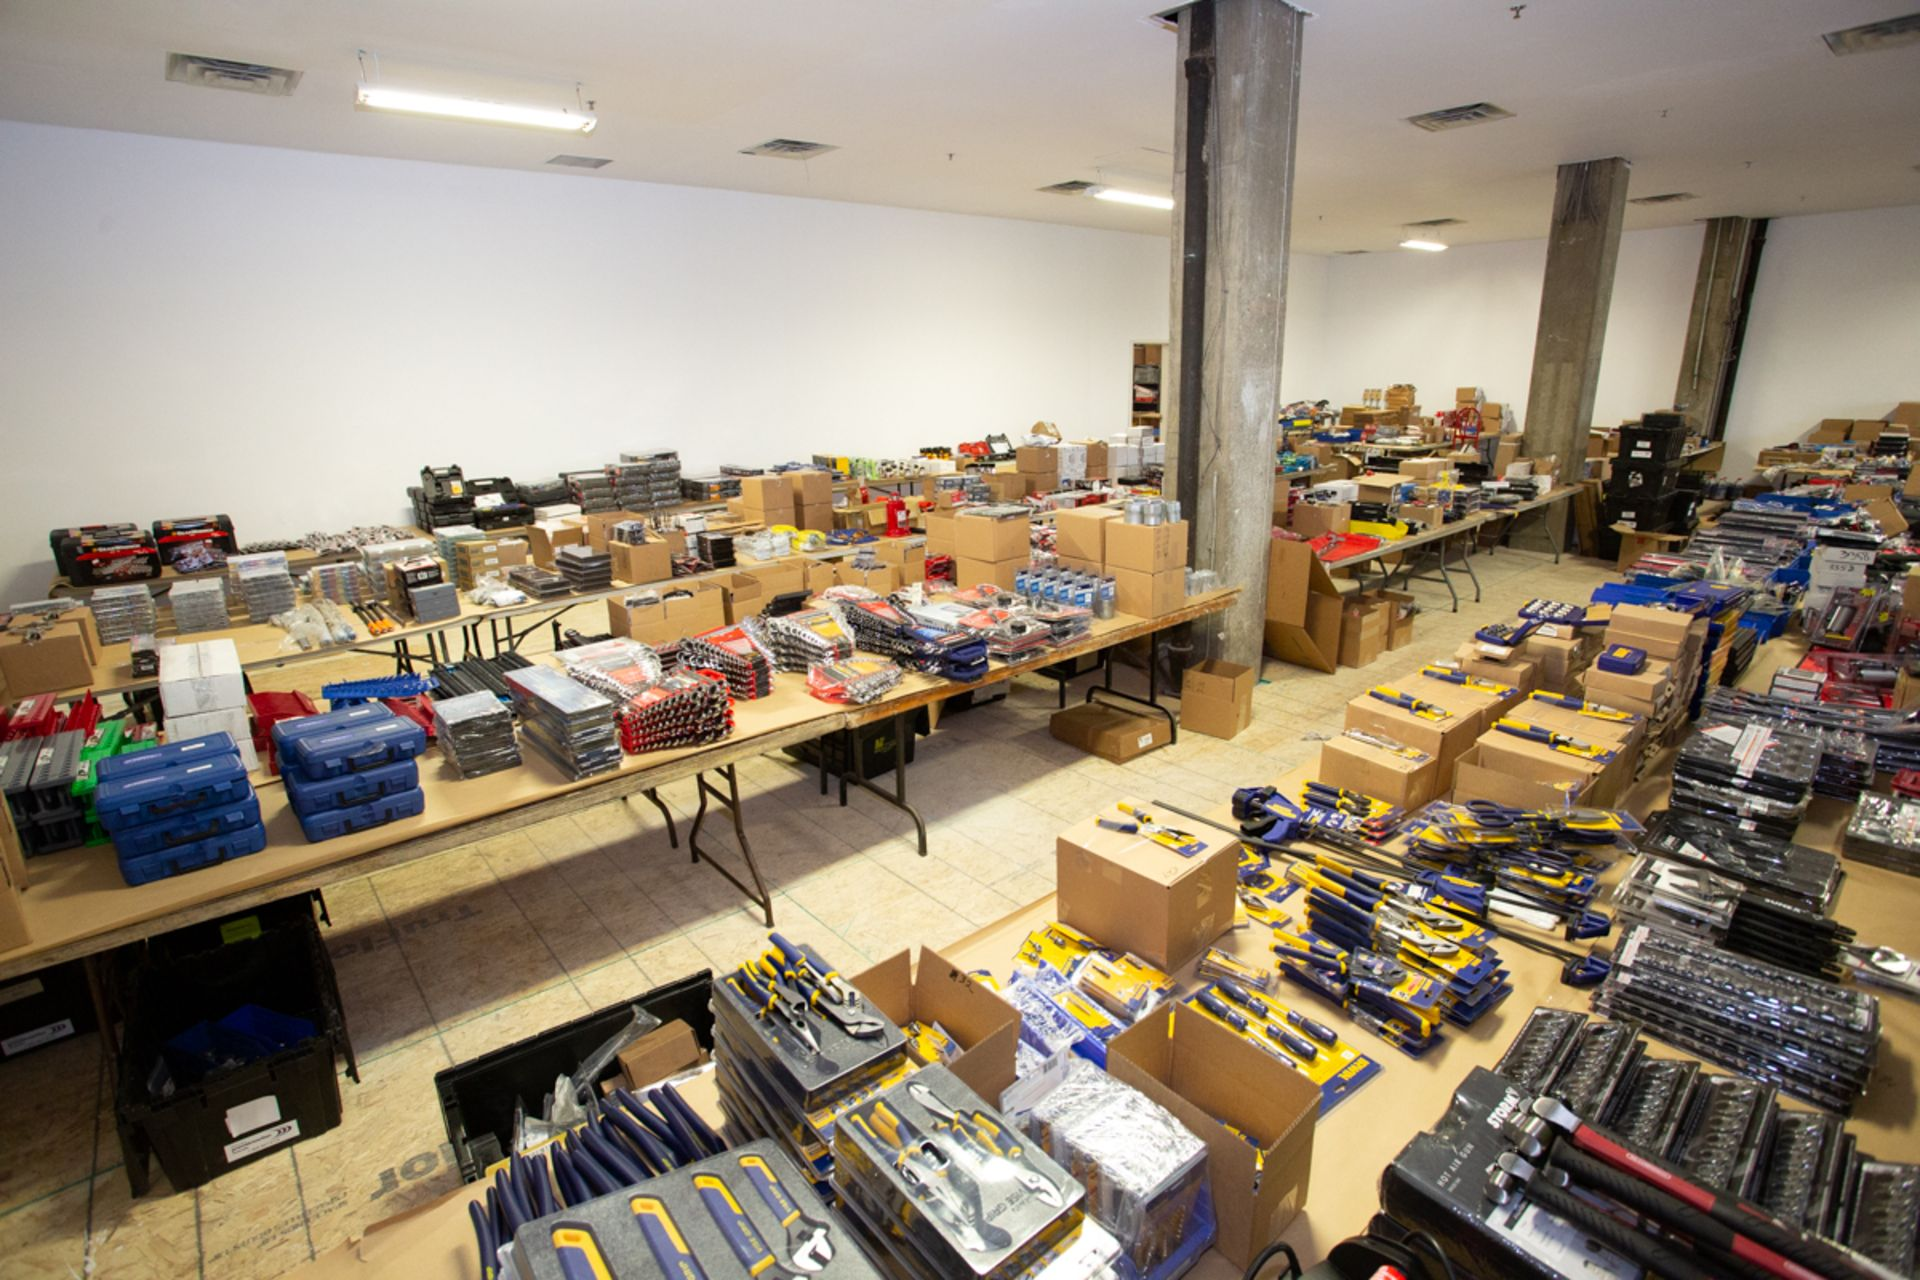 Lot 0A - LARGE SELECTION OF NEW AUTOMOTIVE SERVICE EQUIPMENT: